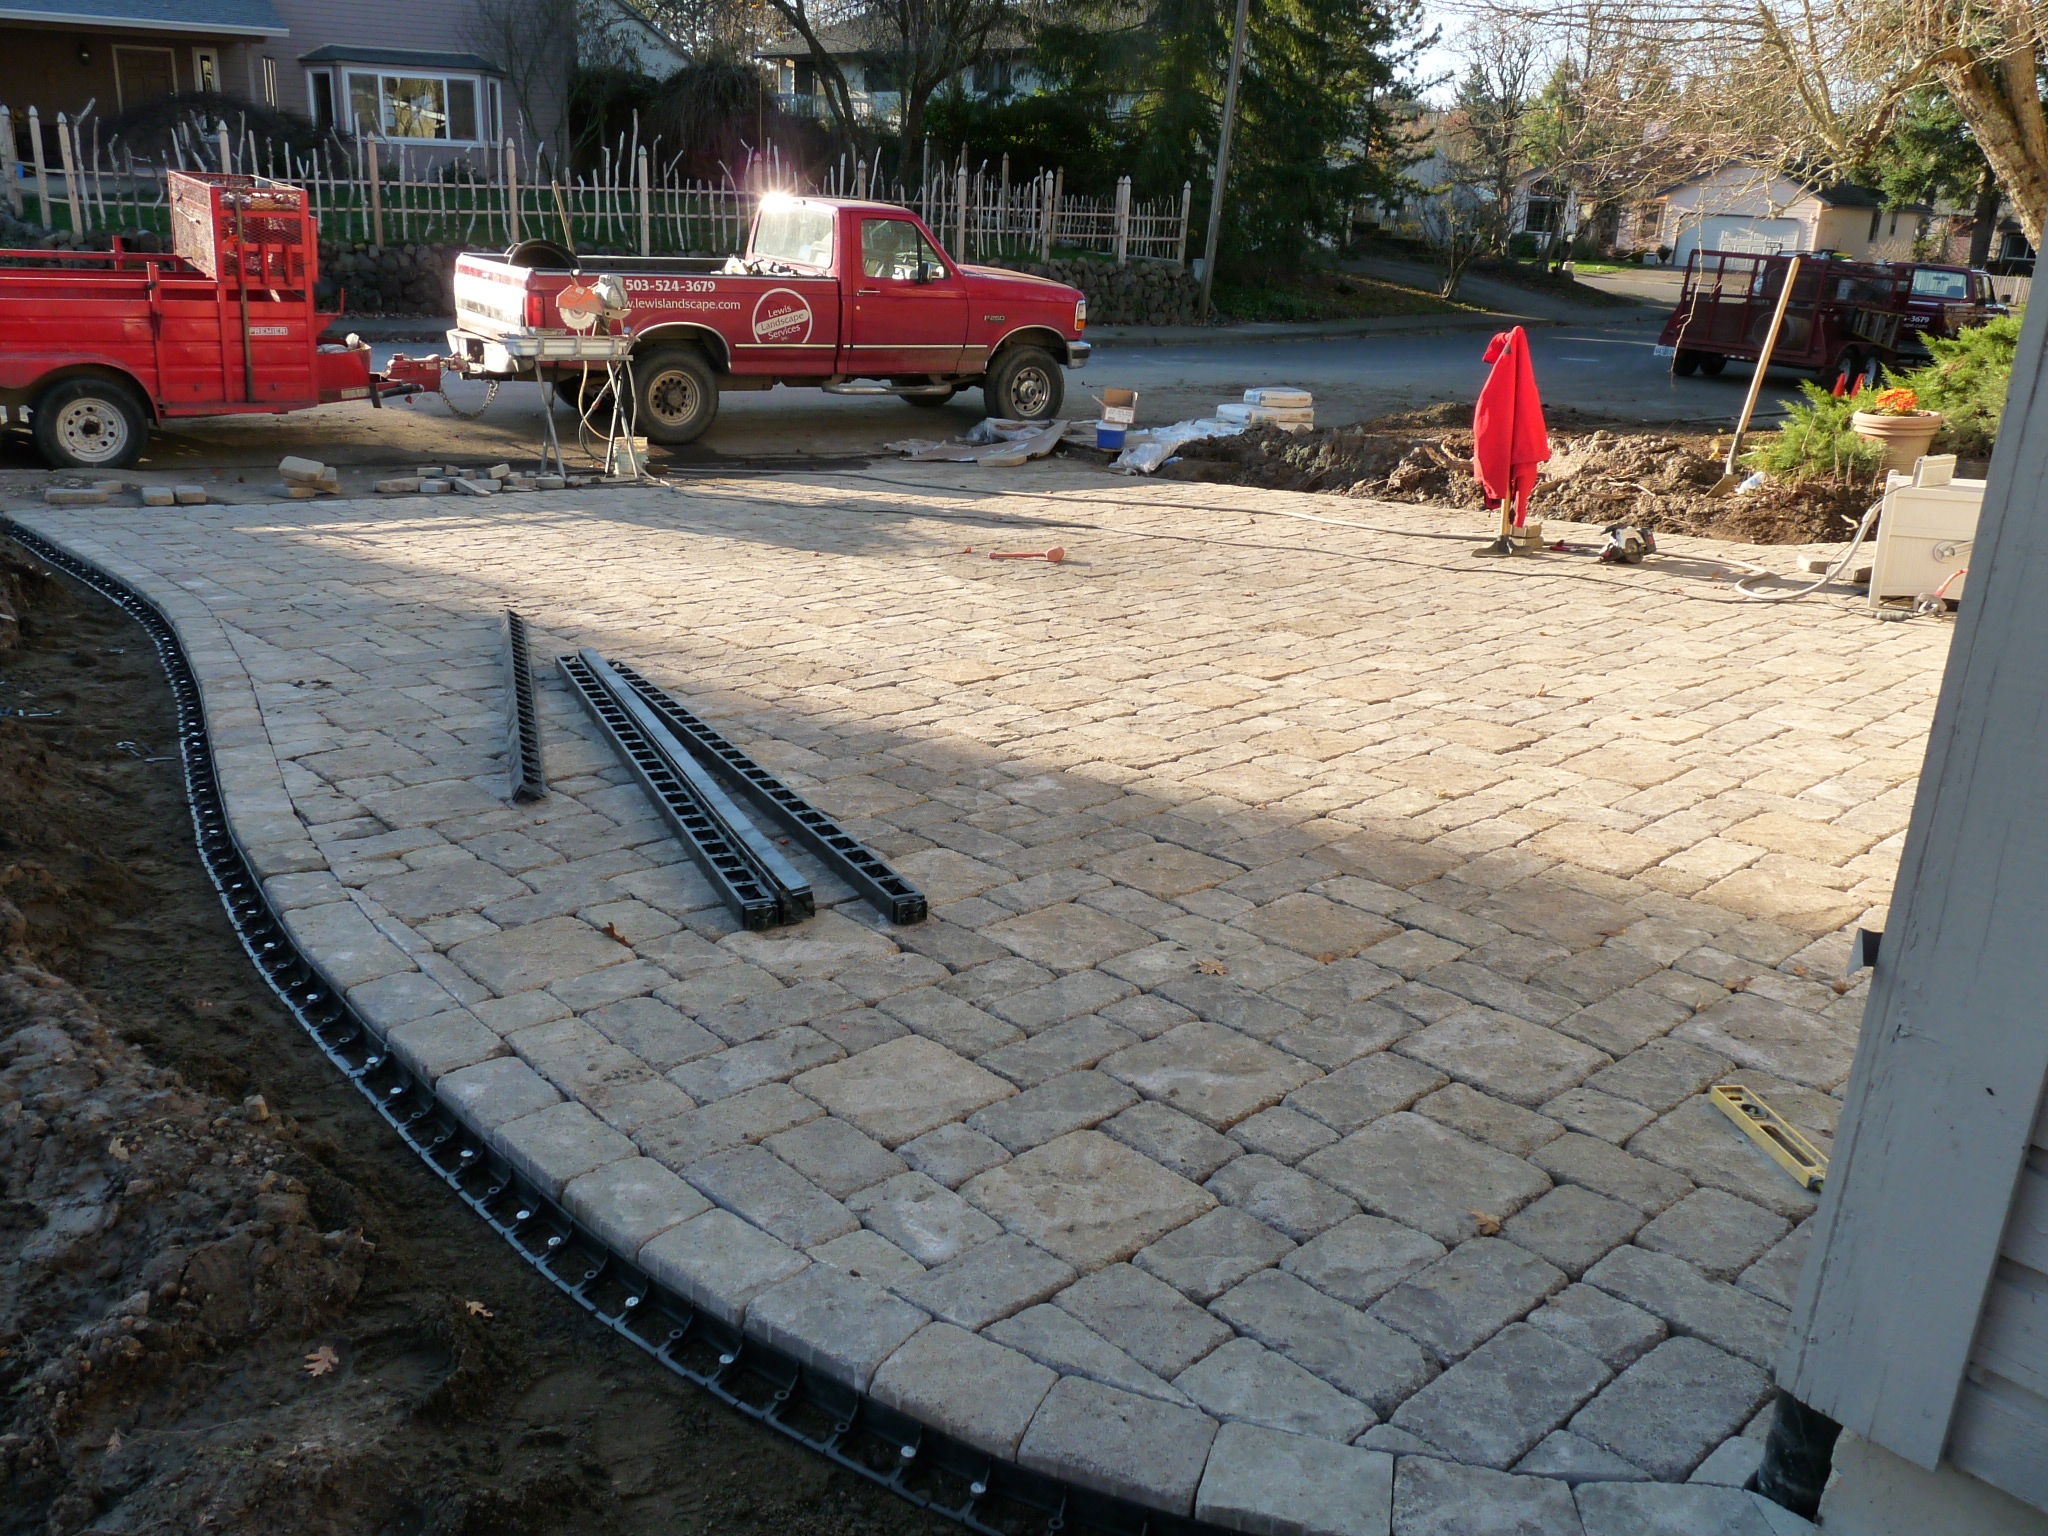 Paver Driveway During Construction - Getting Close!